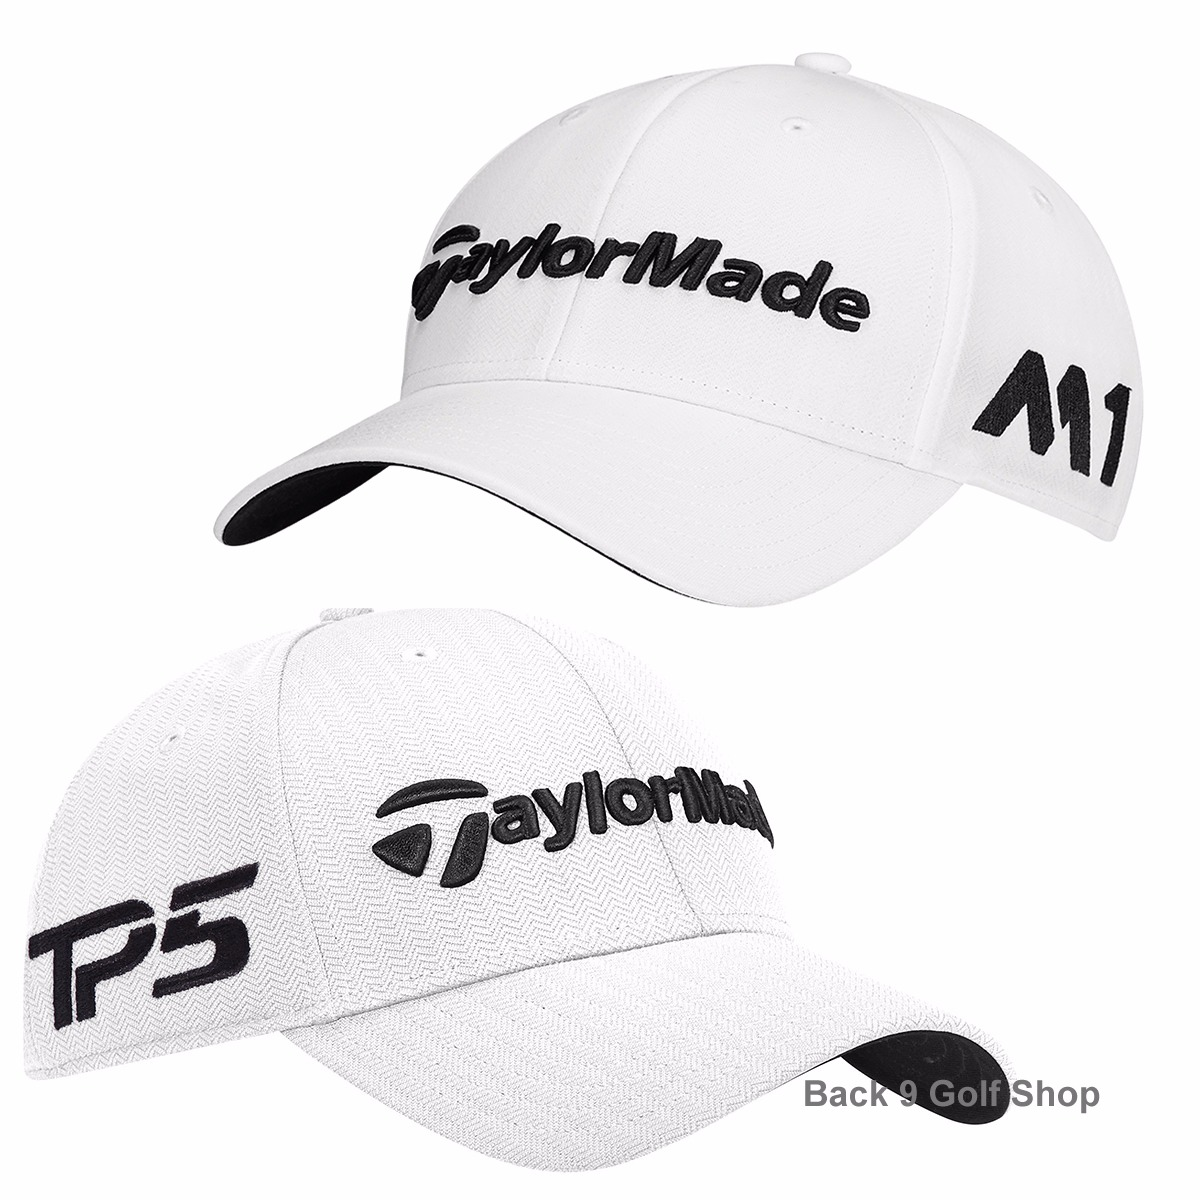 ab378f8534a Details about New TaylorMade M1 TP5 Tour Radar Hat Adjustable Mens Golf Hat  White